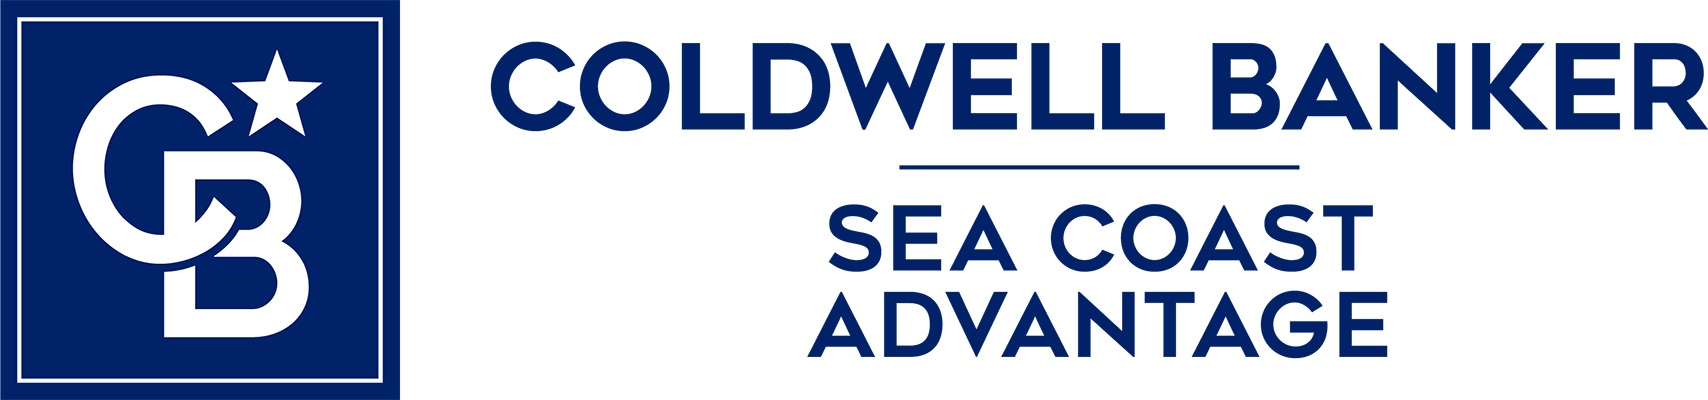 Tiffany Howard - Coldwell Banker Sea Coast Advantage Realty